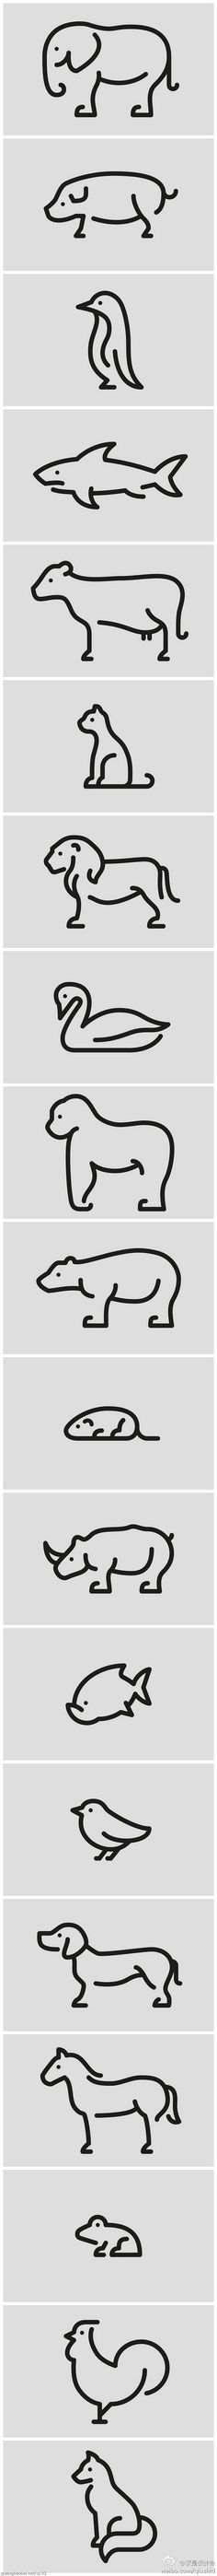 Animal Pictograms by Jan Filek, via Behance